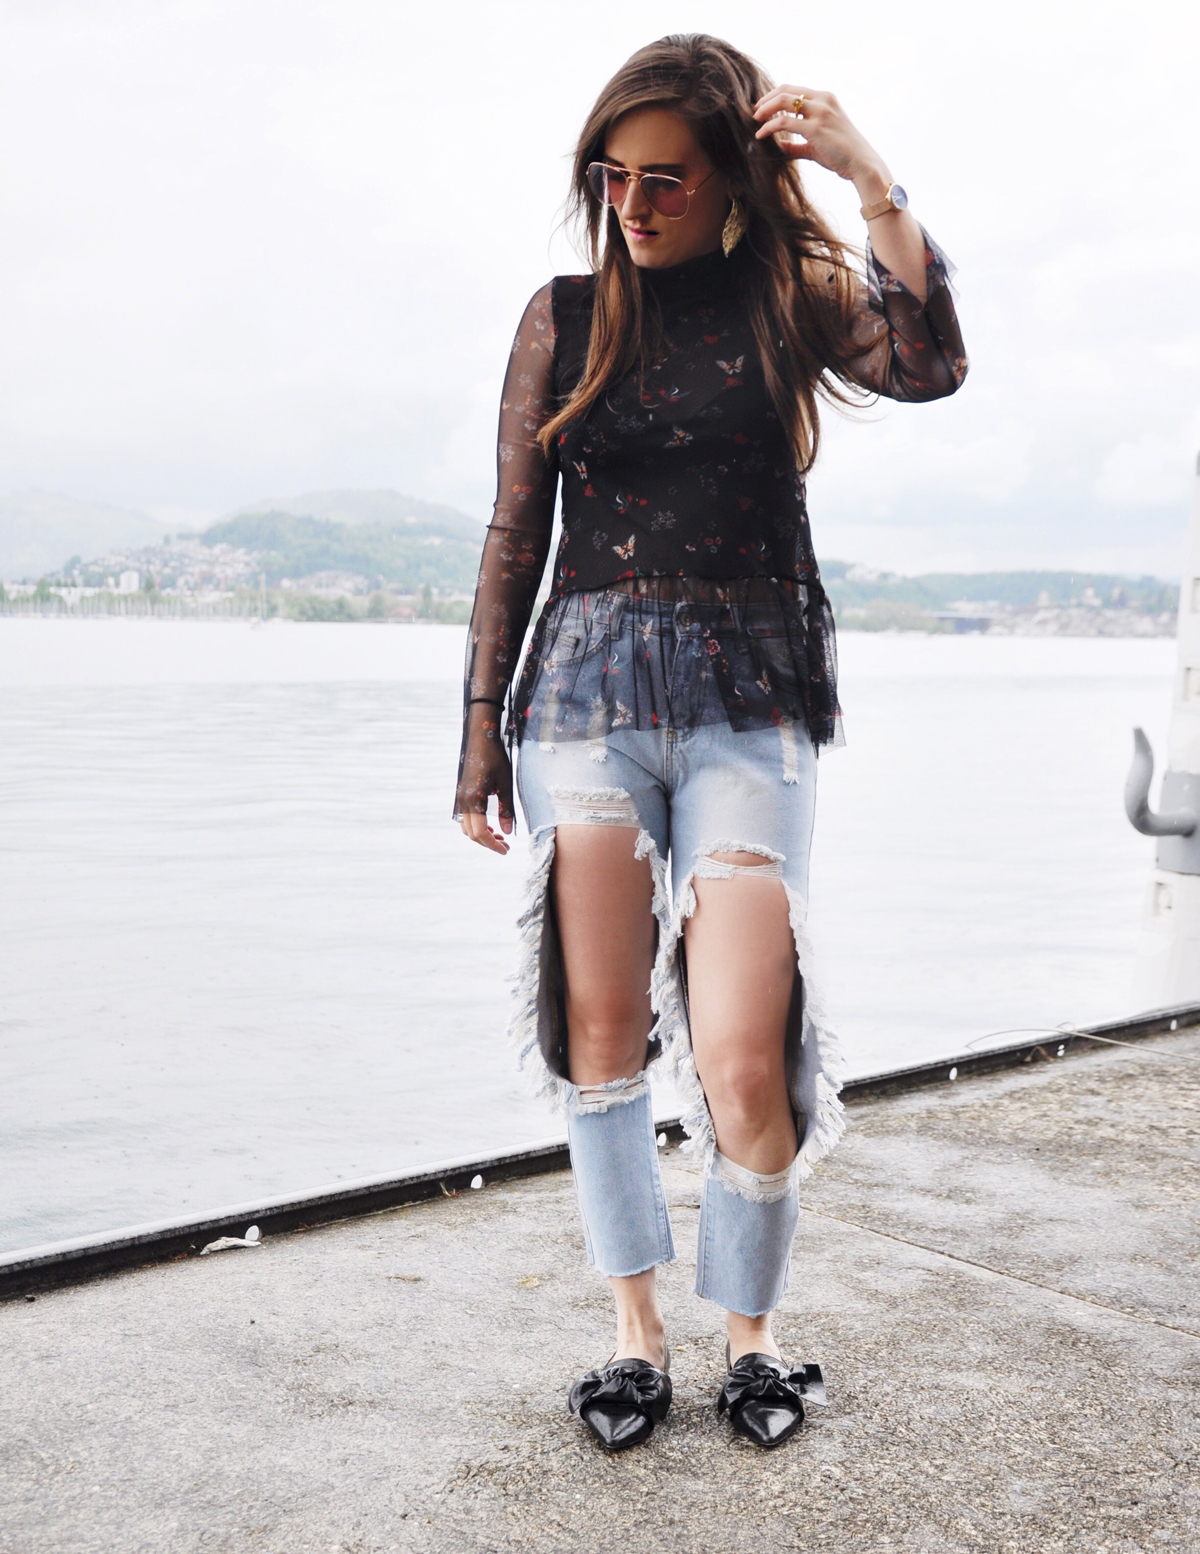 Fashionblogger, Andrea Steiner from Strawberries 'n' Champagne is wearing ripped jeans from shein.com combined with a tulle shirt from Stradivarius. The shoes are from Zara and the sunglasses from flea market.